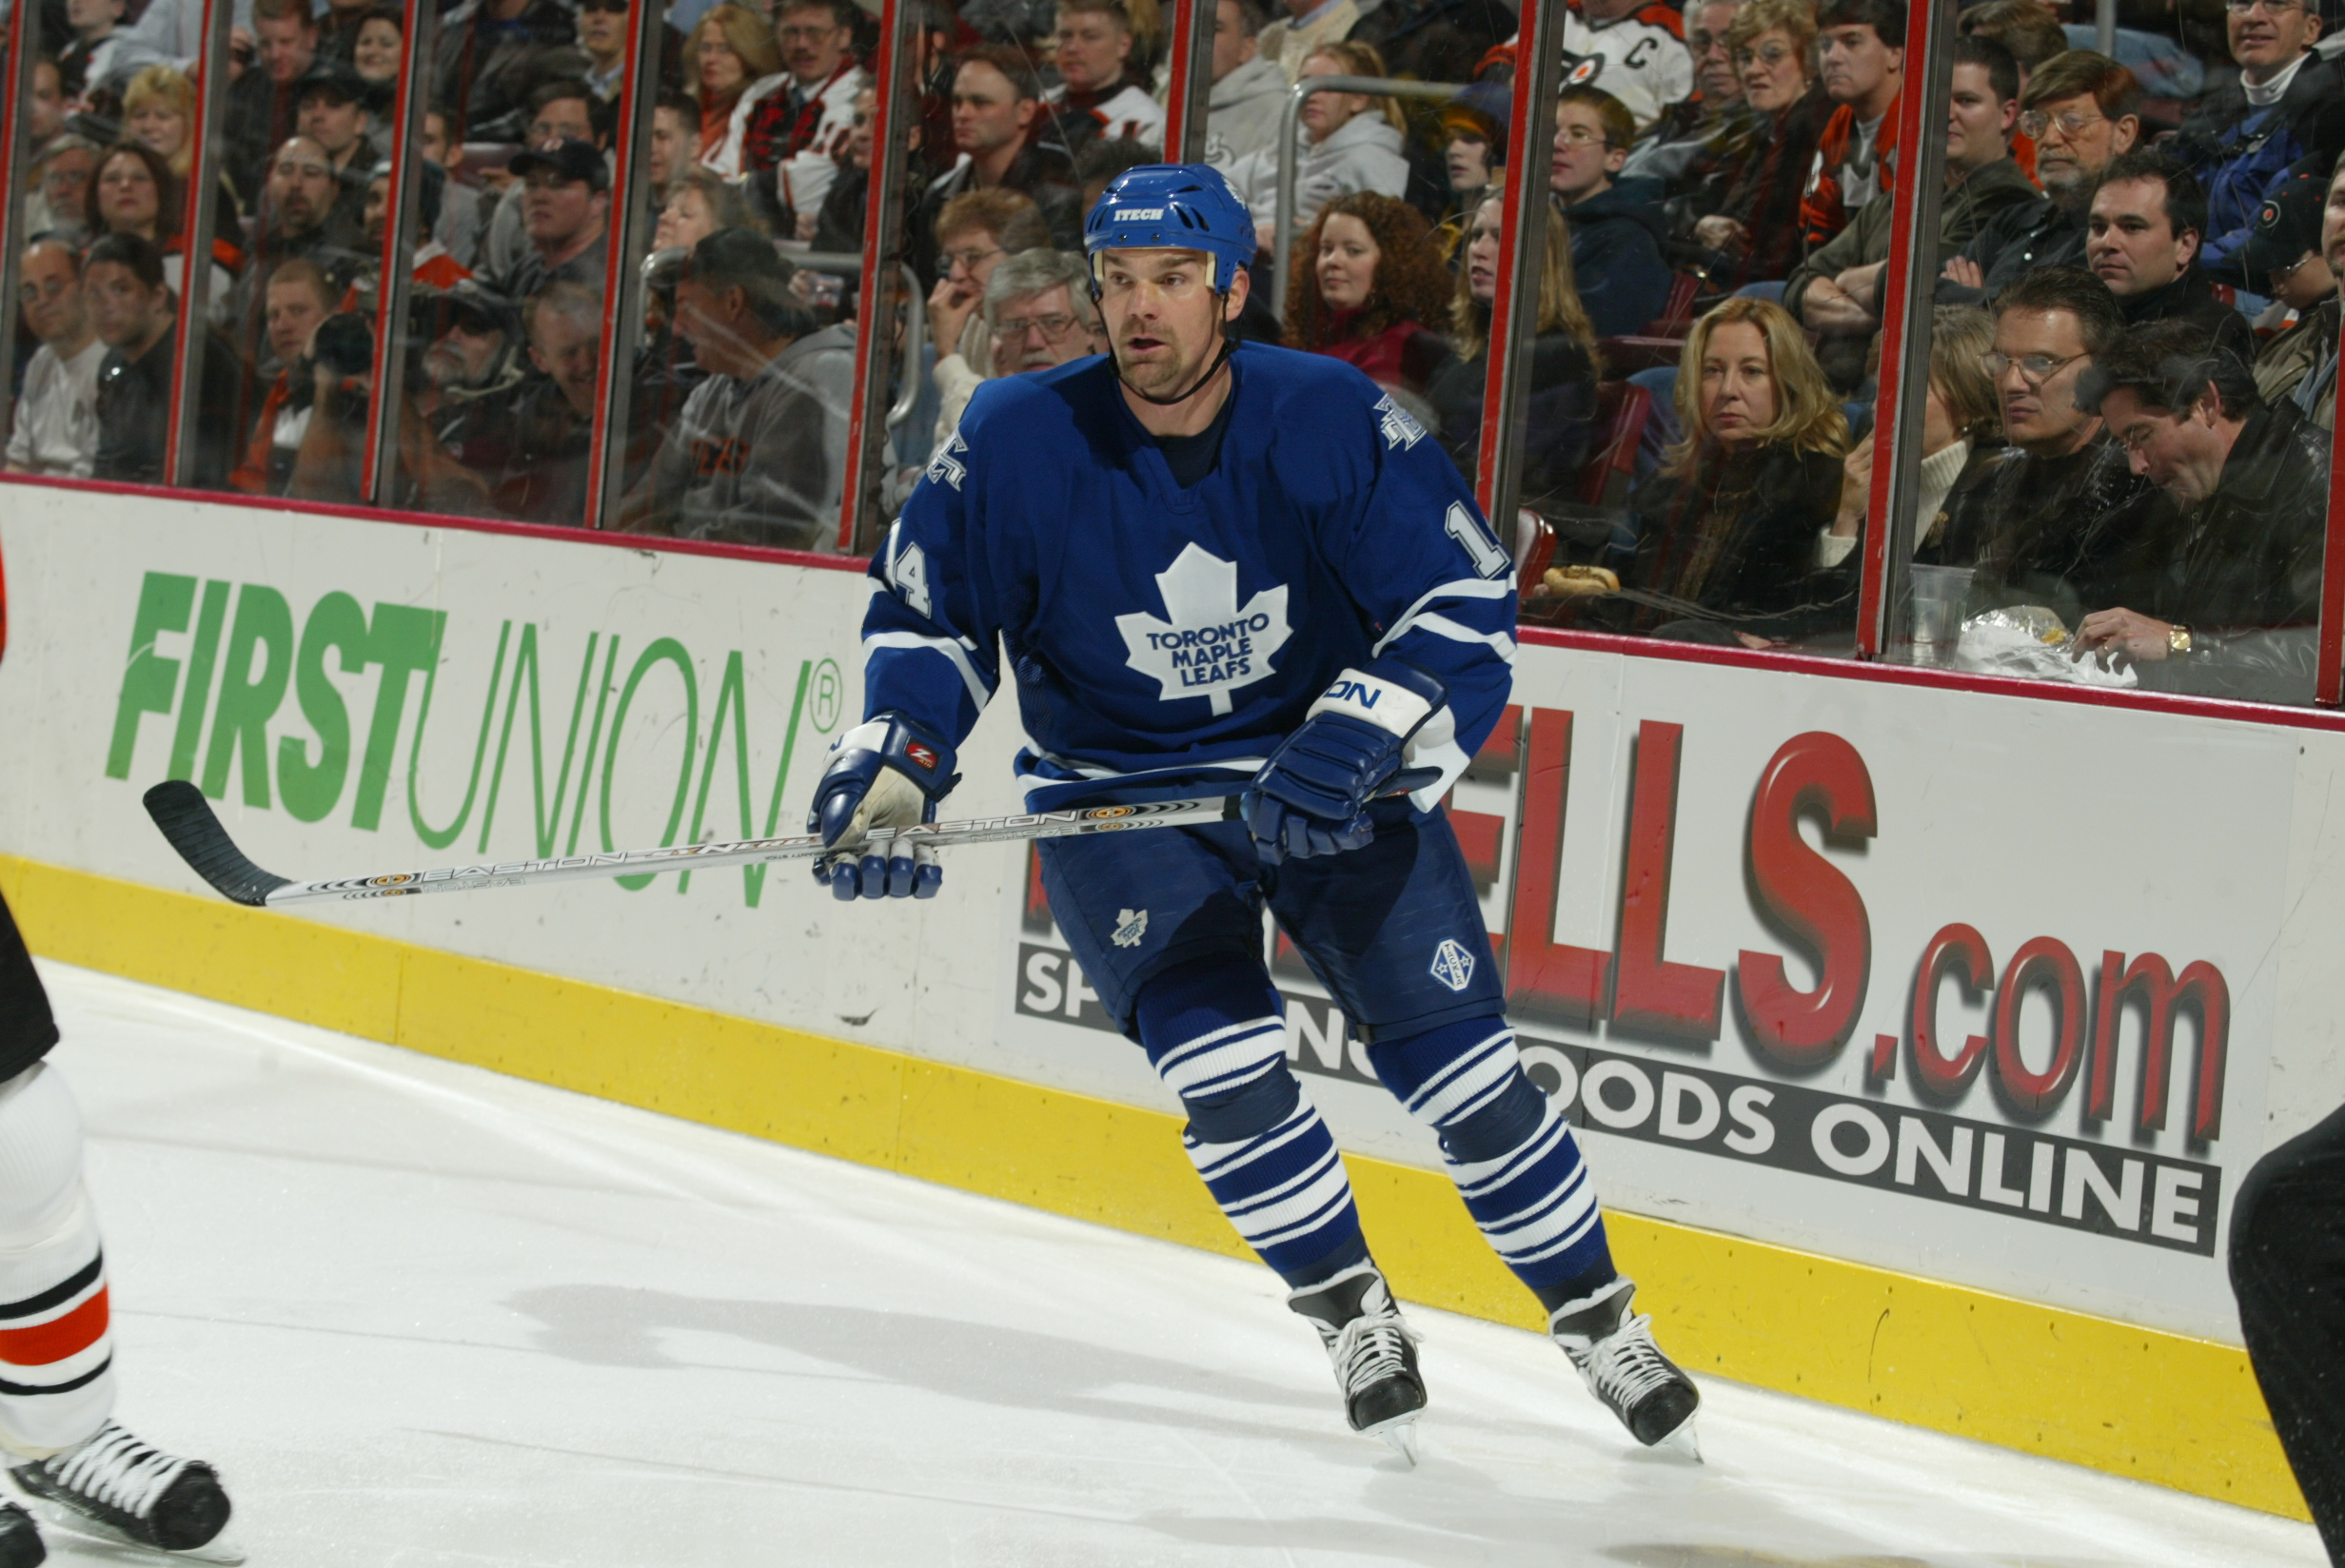 Joffrey Lupul calls out Leafs on Instagram, says they cheat